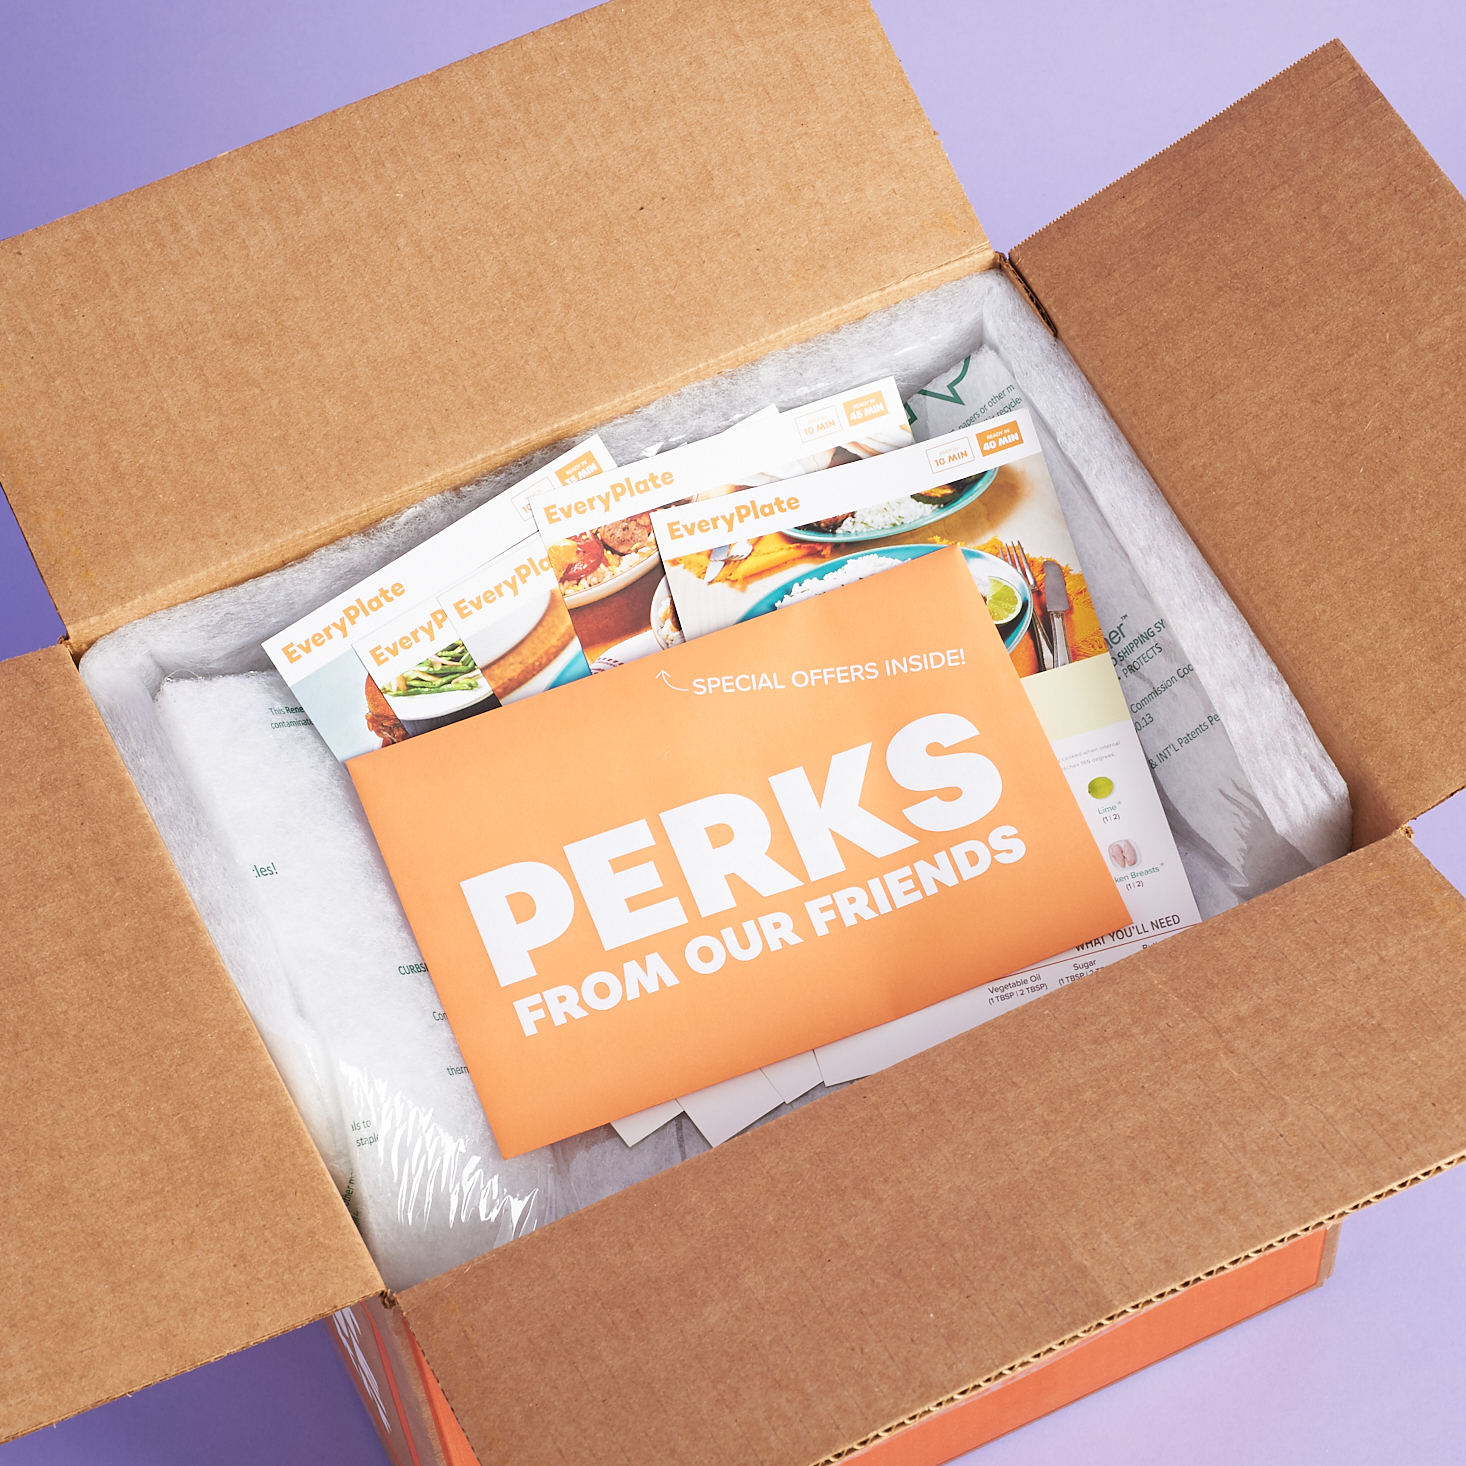 Perks coupons on top of open box